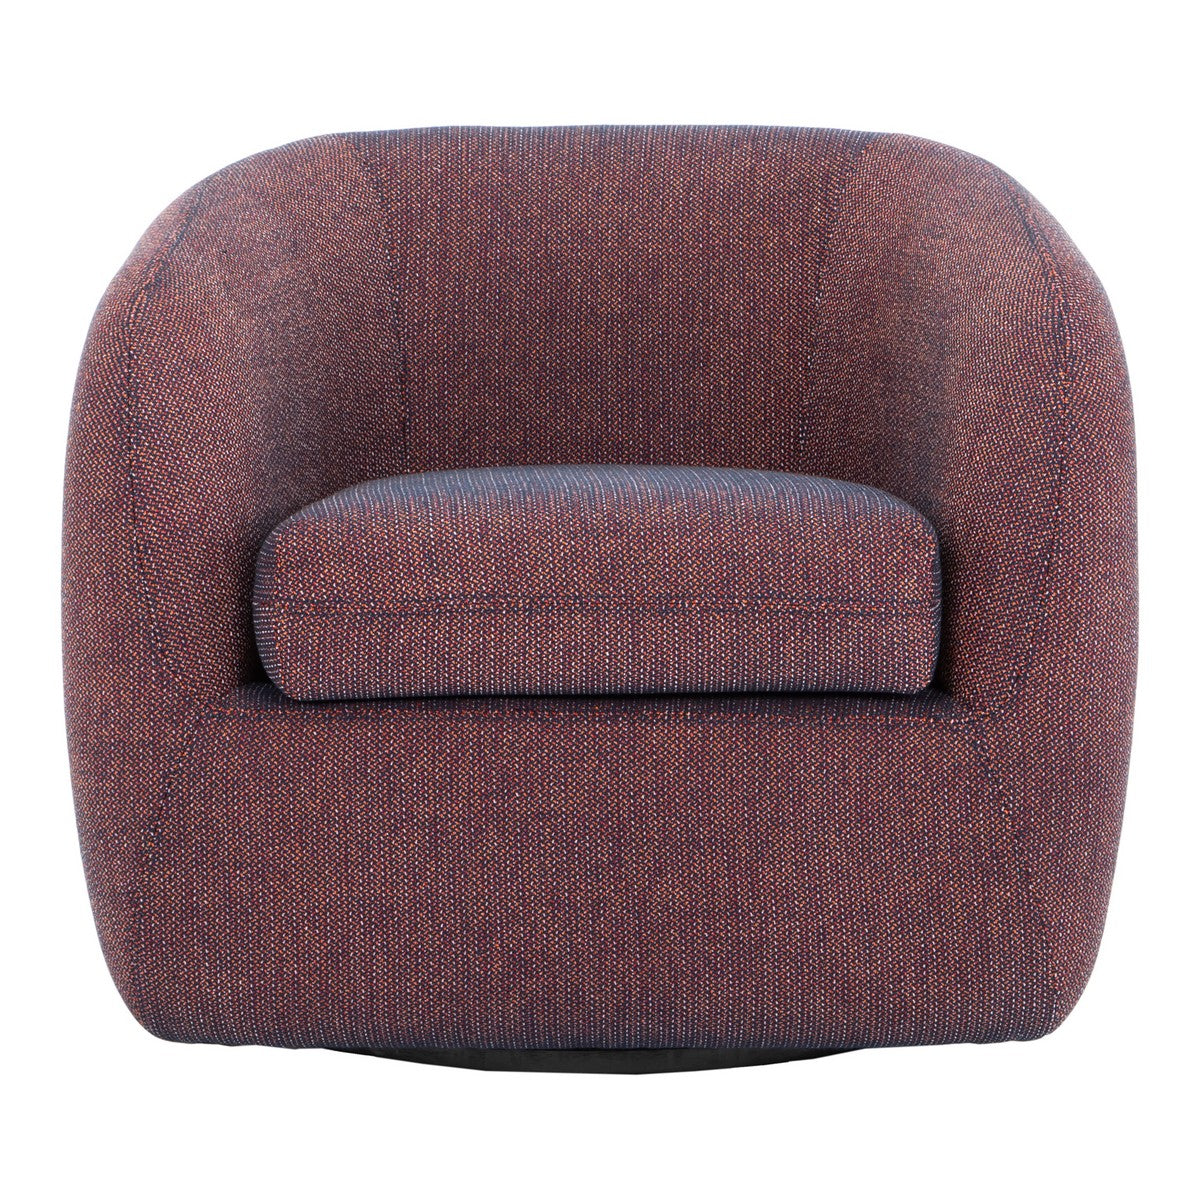 Moe's Home Collection Maurice Swivel Chair Rosa Orange - JM-1003-12 - Moe's Home Collection - lounge chairs - Minimal And Modern - 1